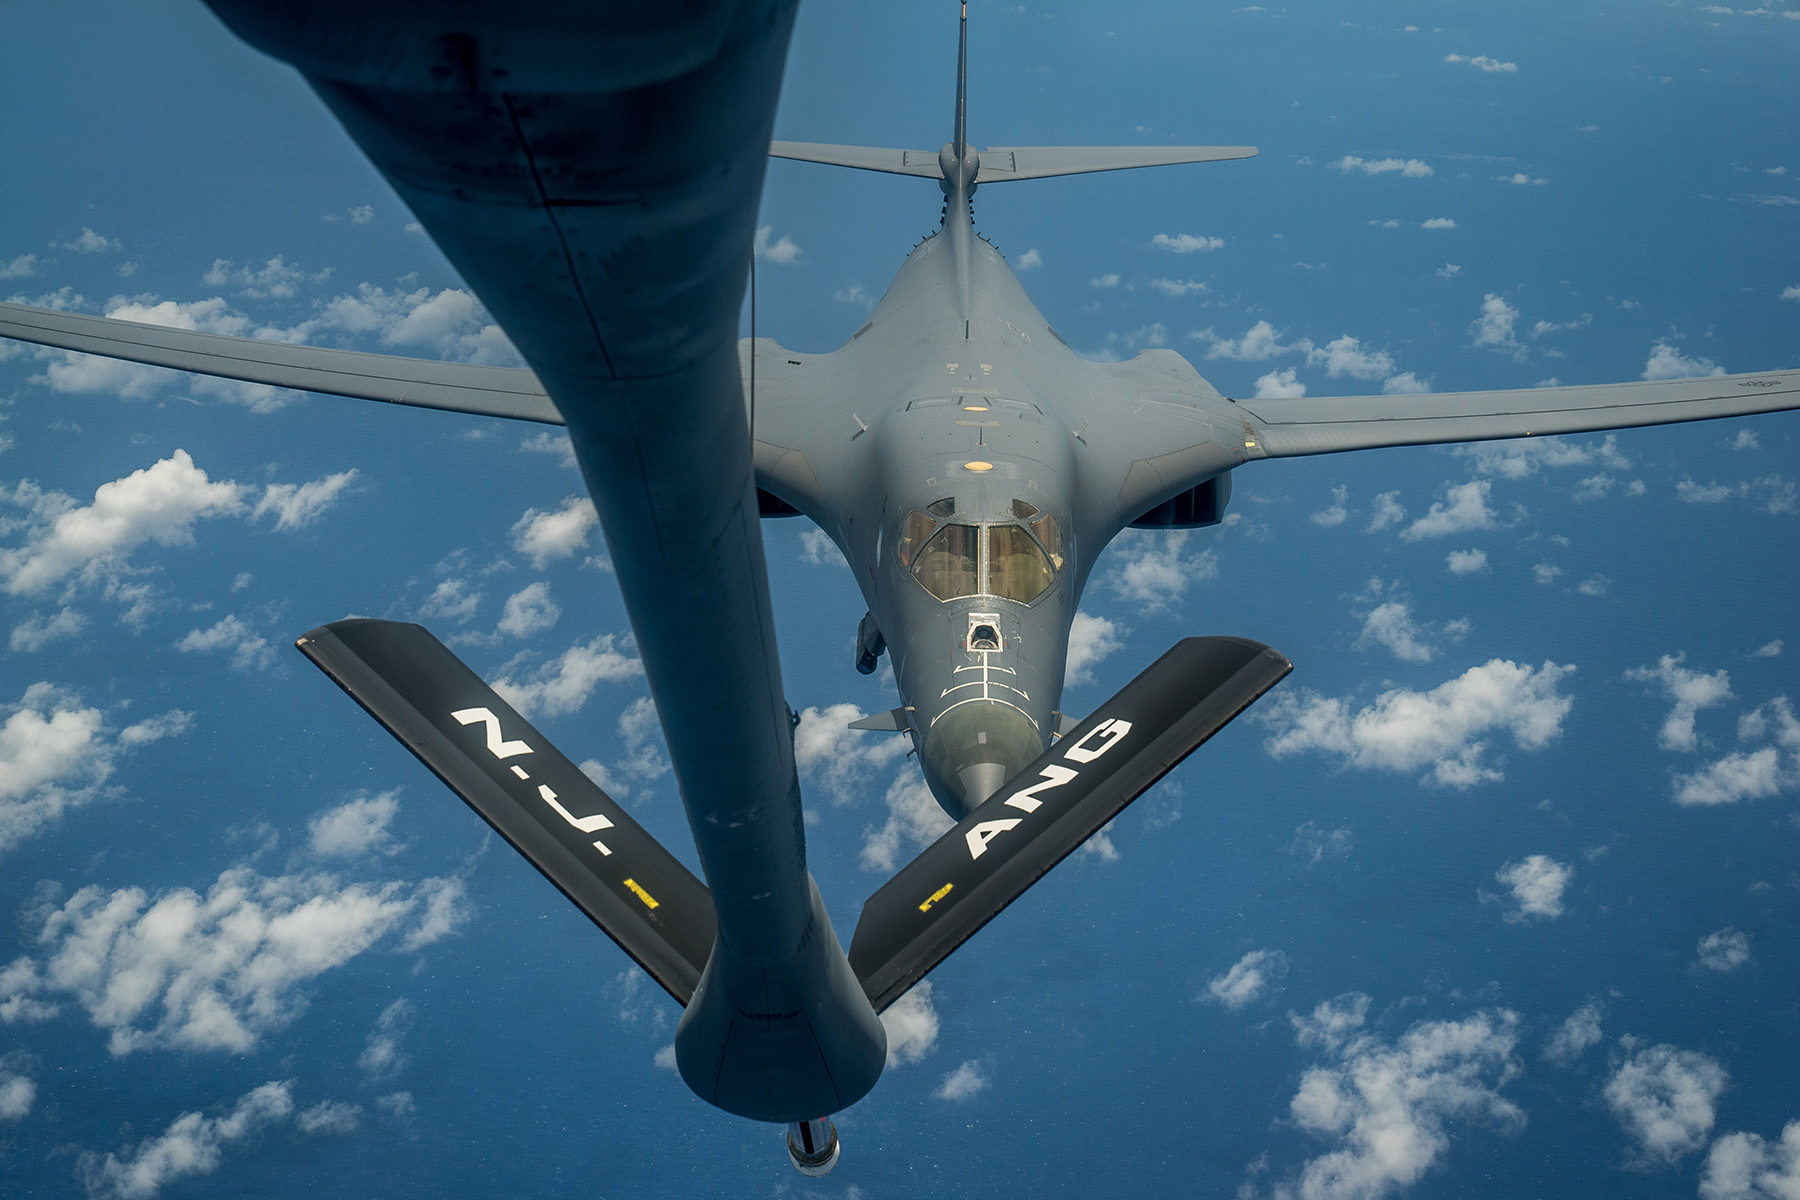 A U.S. Air Force B-1B Lancer prepares to receive fuel from a KC-135 Stratotanker during a mission from Andersen Air Force Base, Guam, into Japanese air space and over the Korean Peninsula, Aug. 31, 2017. After refueling, the B-1Bs with U.S. Marine Corps' F-35Bs, made contact with two Koku Jieitai (Japan Air Self-Defense Force) F-15J fighters over waters near Kyushu, and then were joined by four Republic of Korea F-15 fighters over the Korean Peninsula. This mission is in direct response to North Korea's intermediate range ballistic missile launch and emphasizes the combined ironclad commitment to regional allies and partners. (U.S. Air Force photo/Staff Sgt. Joshua Smoot)